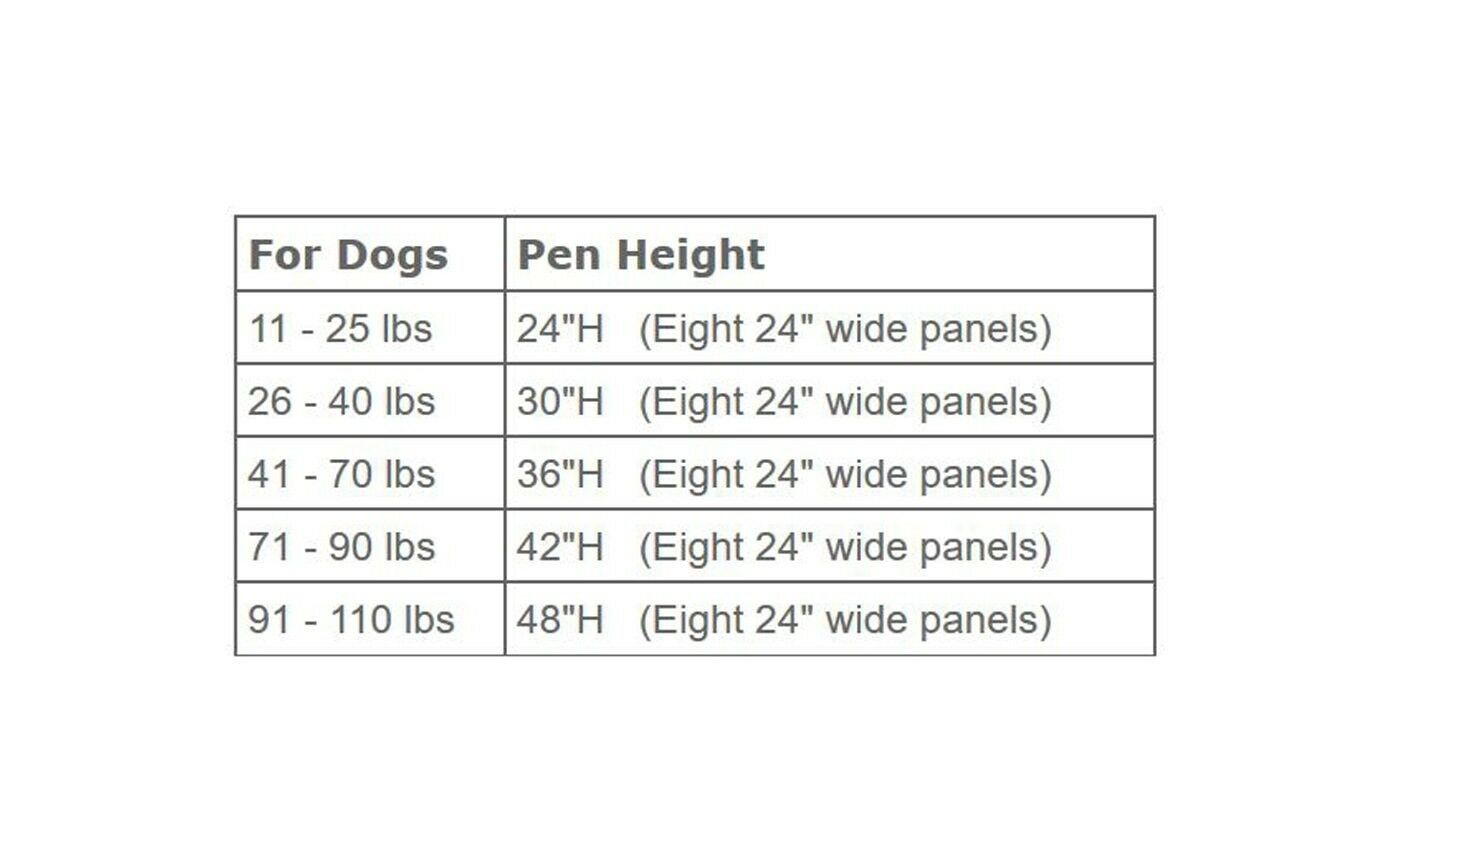 Dog Pen Play Exercise Pet Animal Metal Foldable 24x24    Indoor Outdoor New b54d94